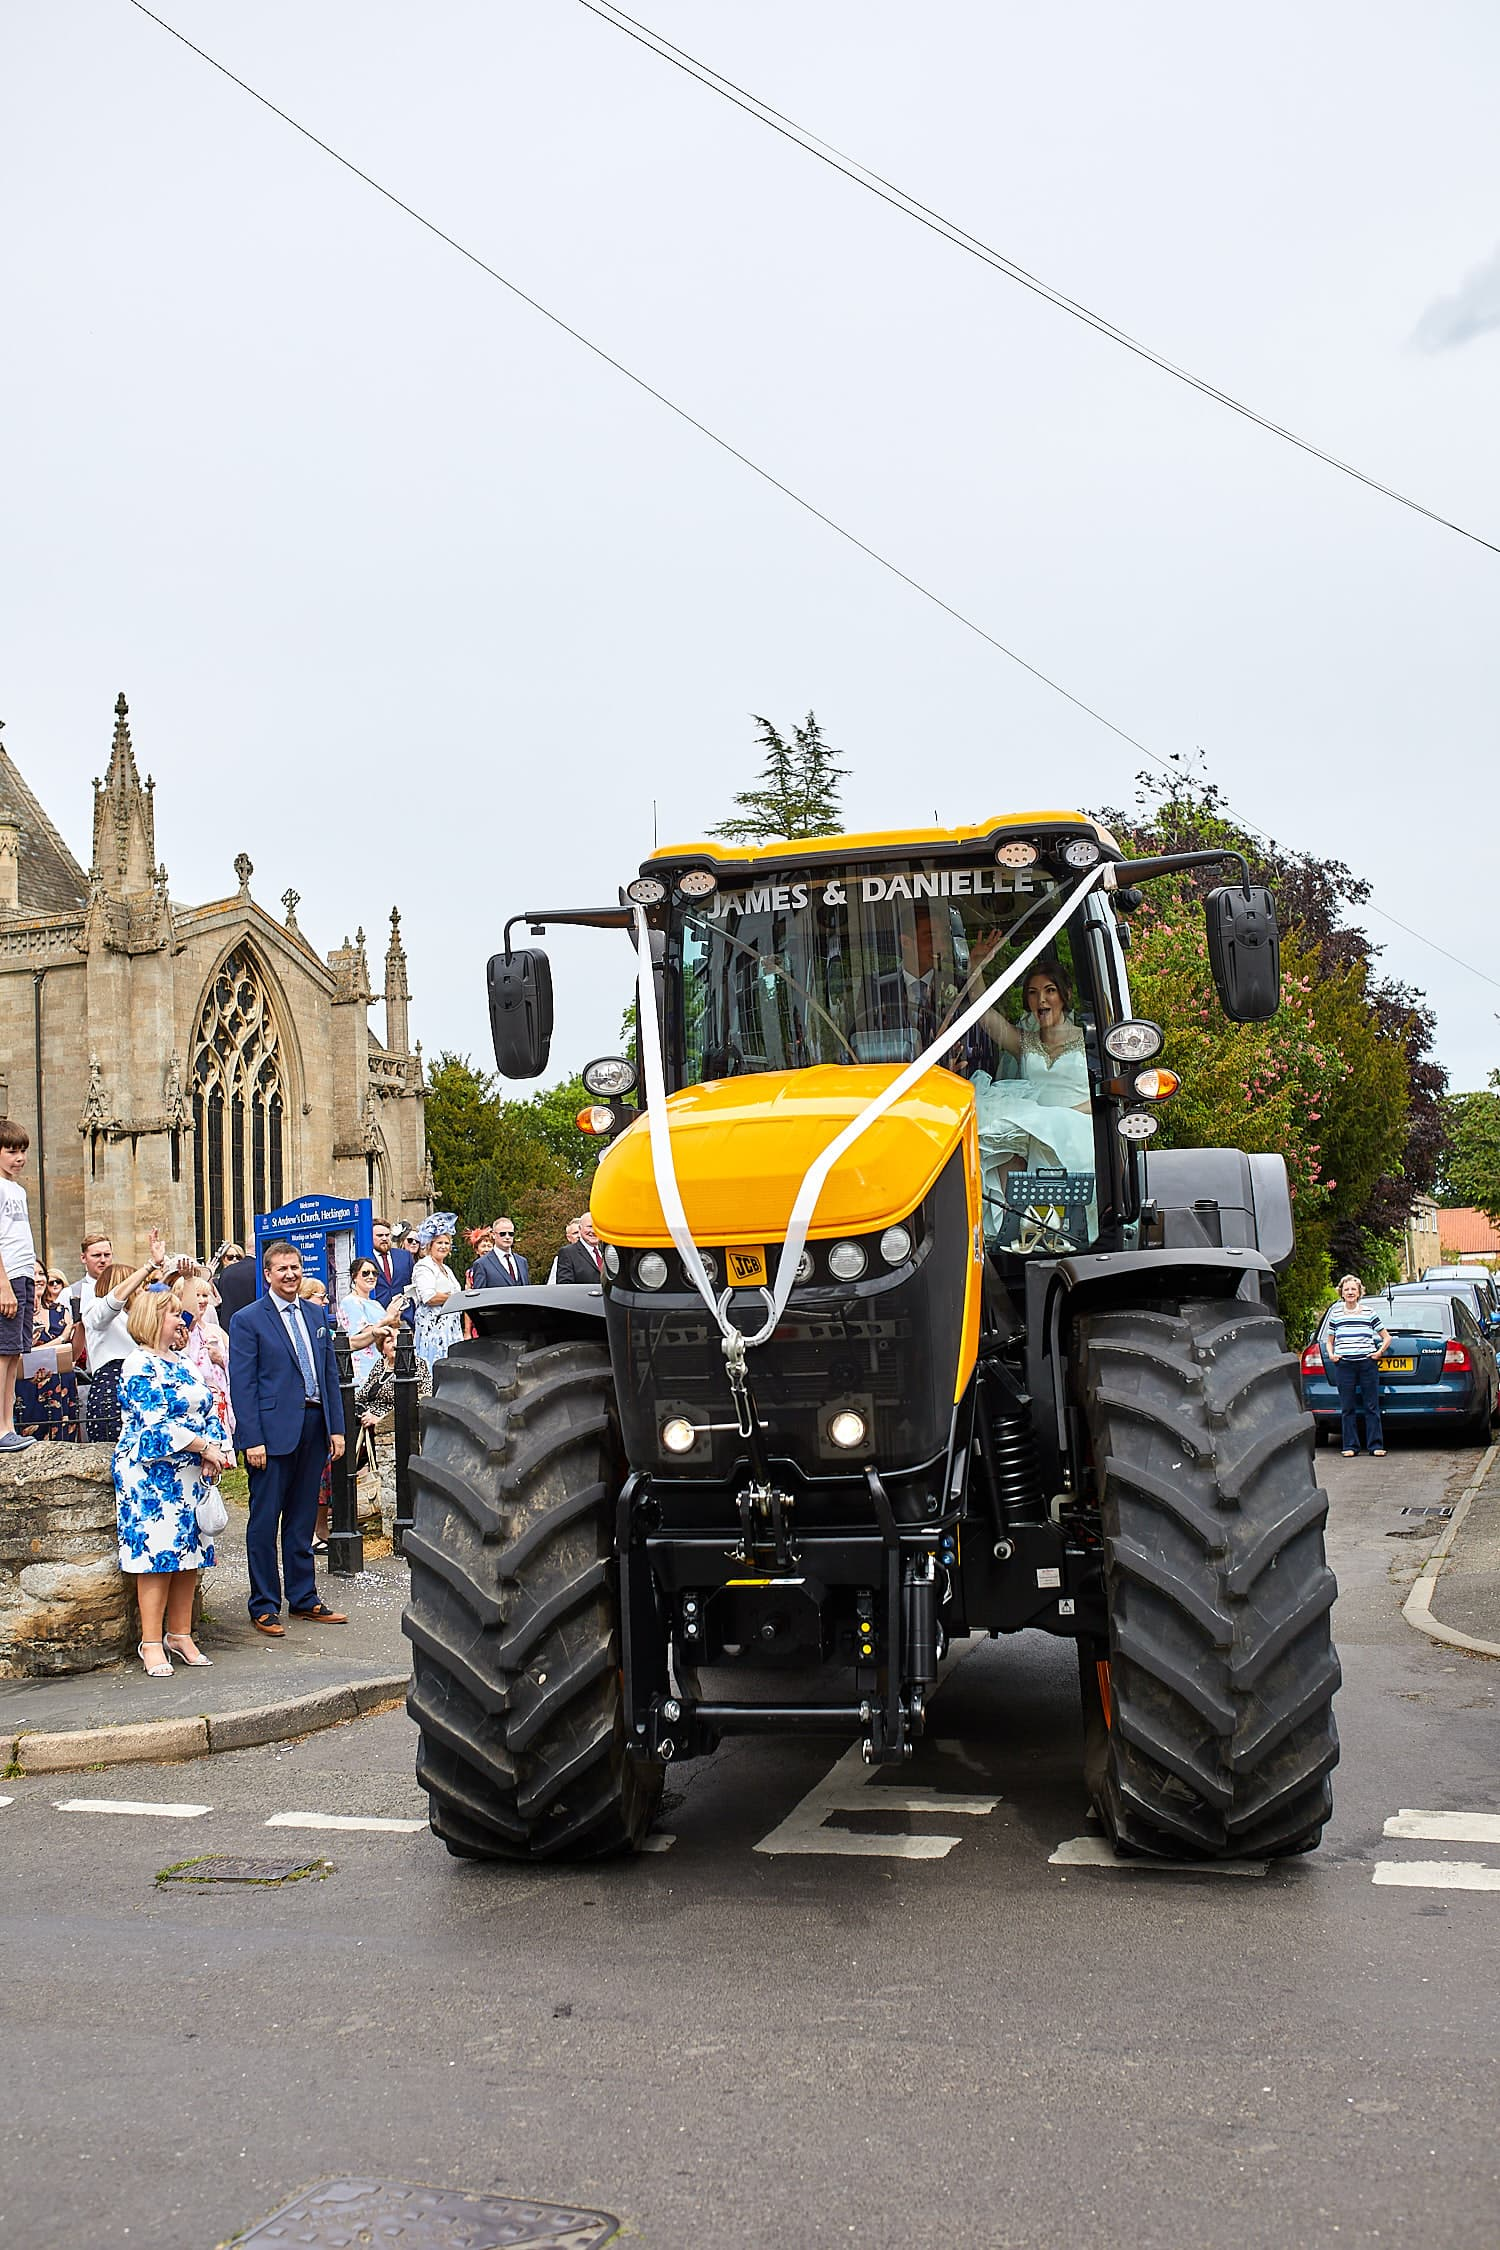 A tractor wedding vehicle leaving the Church at Heckington